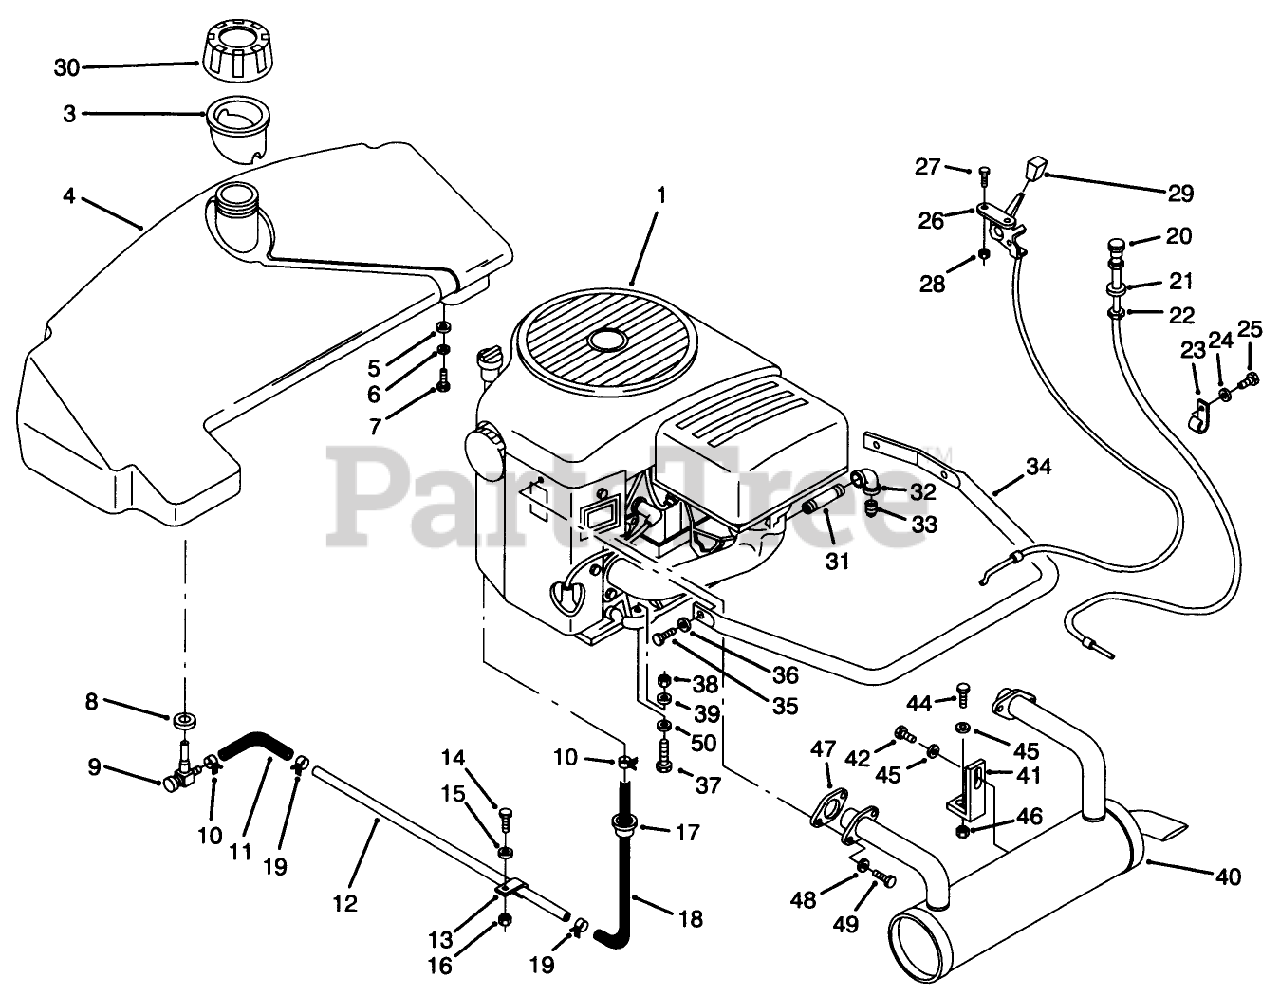 Toro Parts On The Engine Amp Fuel System Assembly Diagram